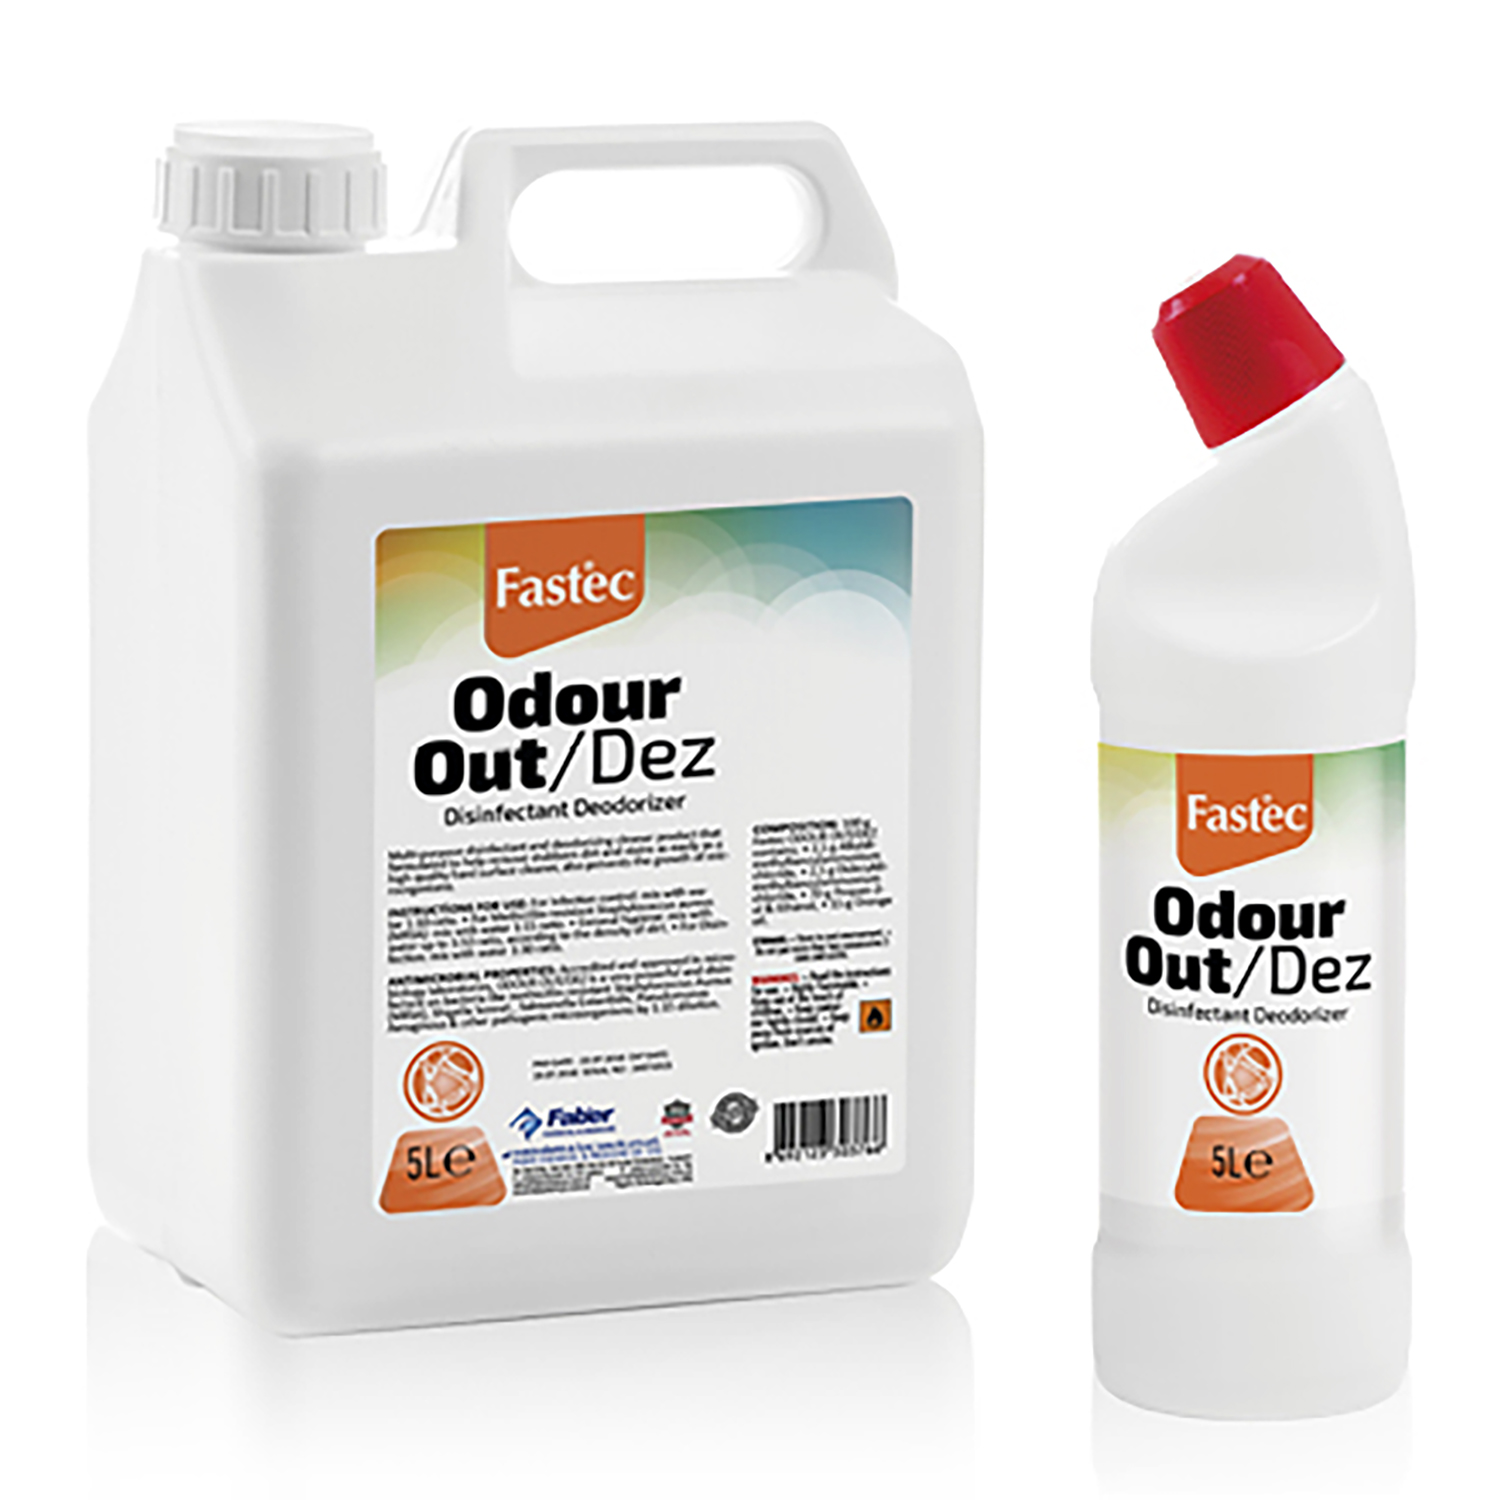 Fastec Odour Out / Dez